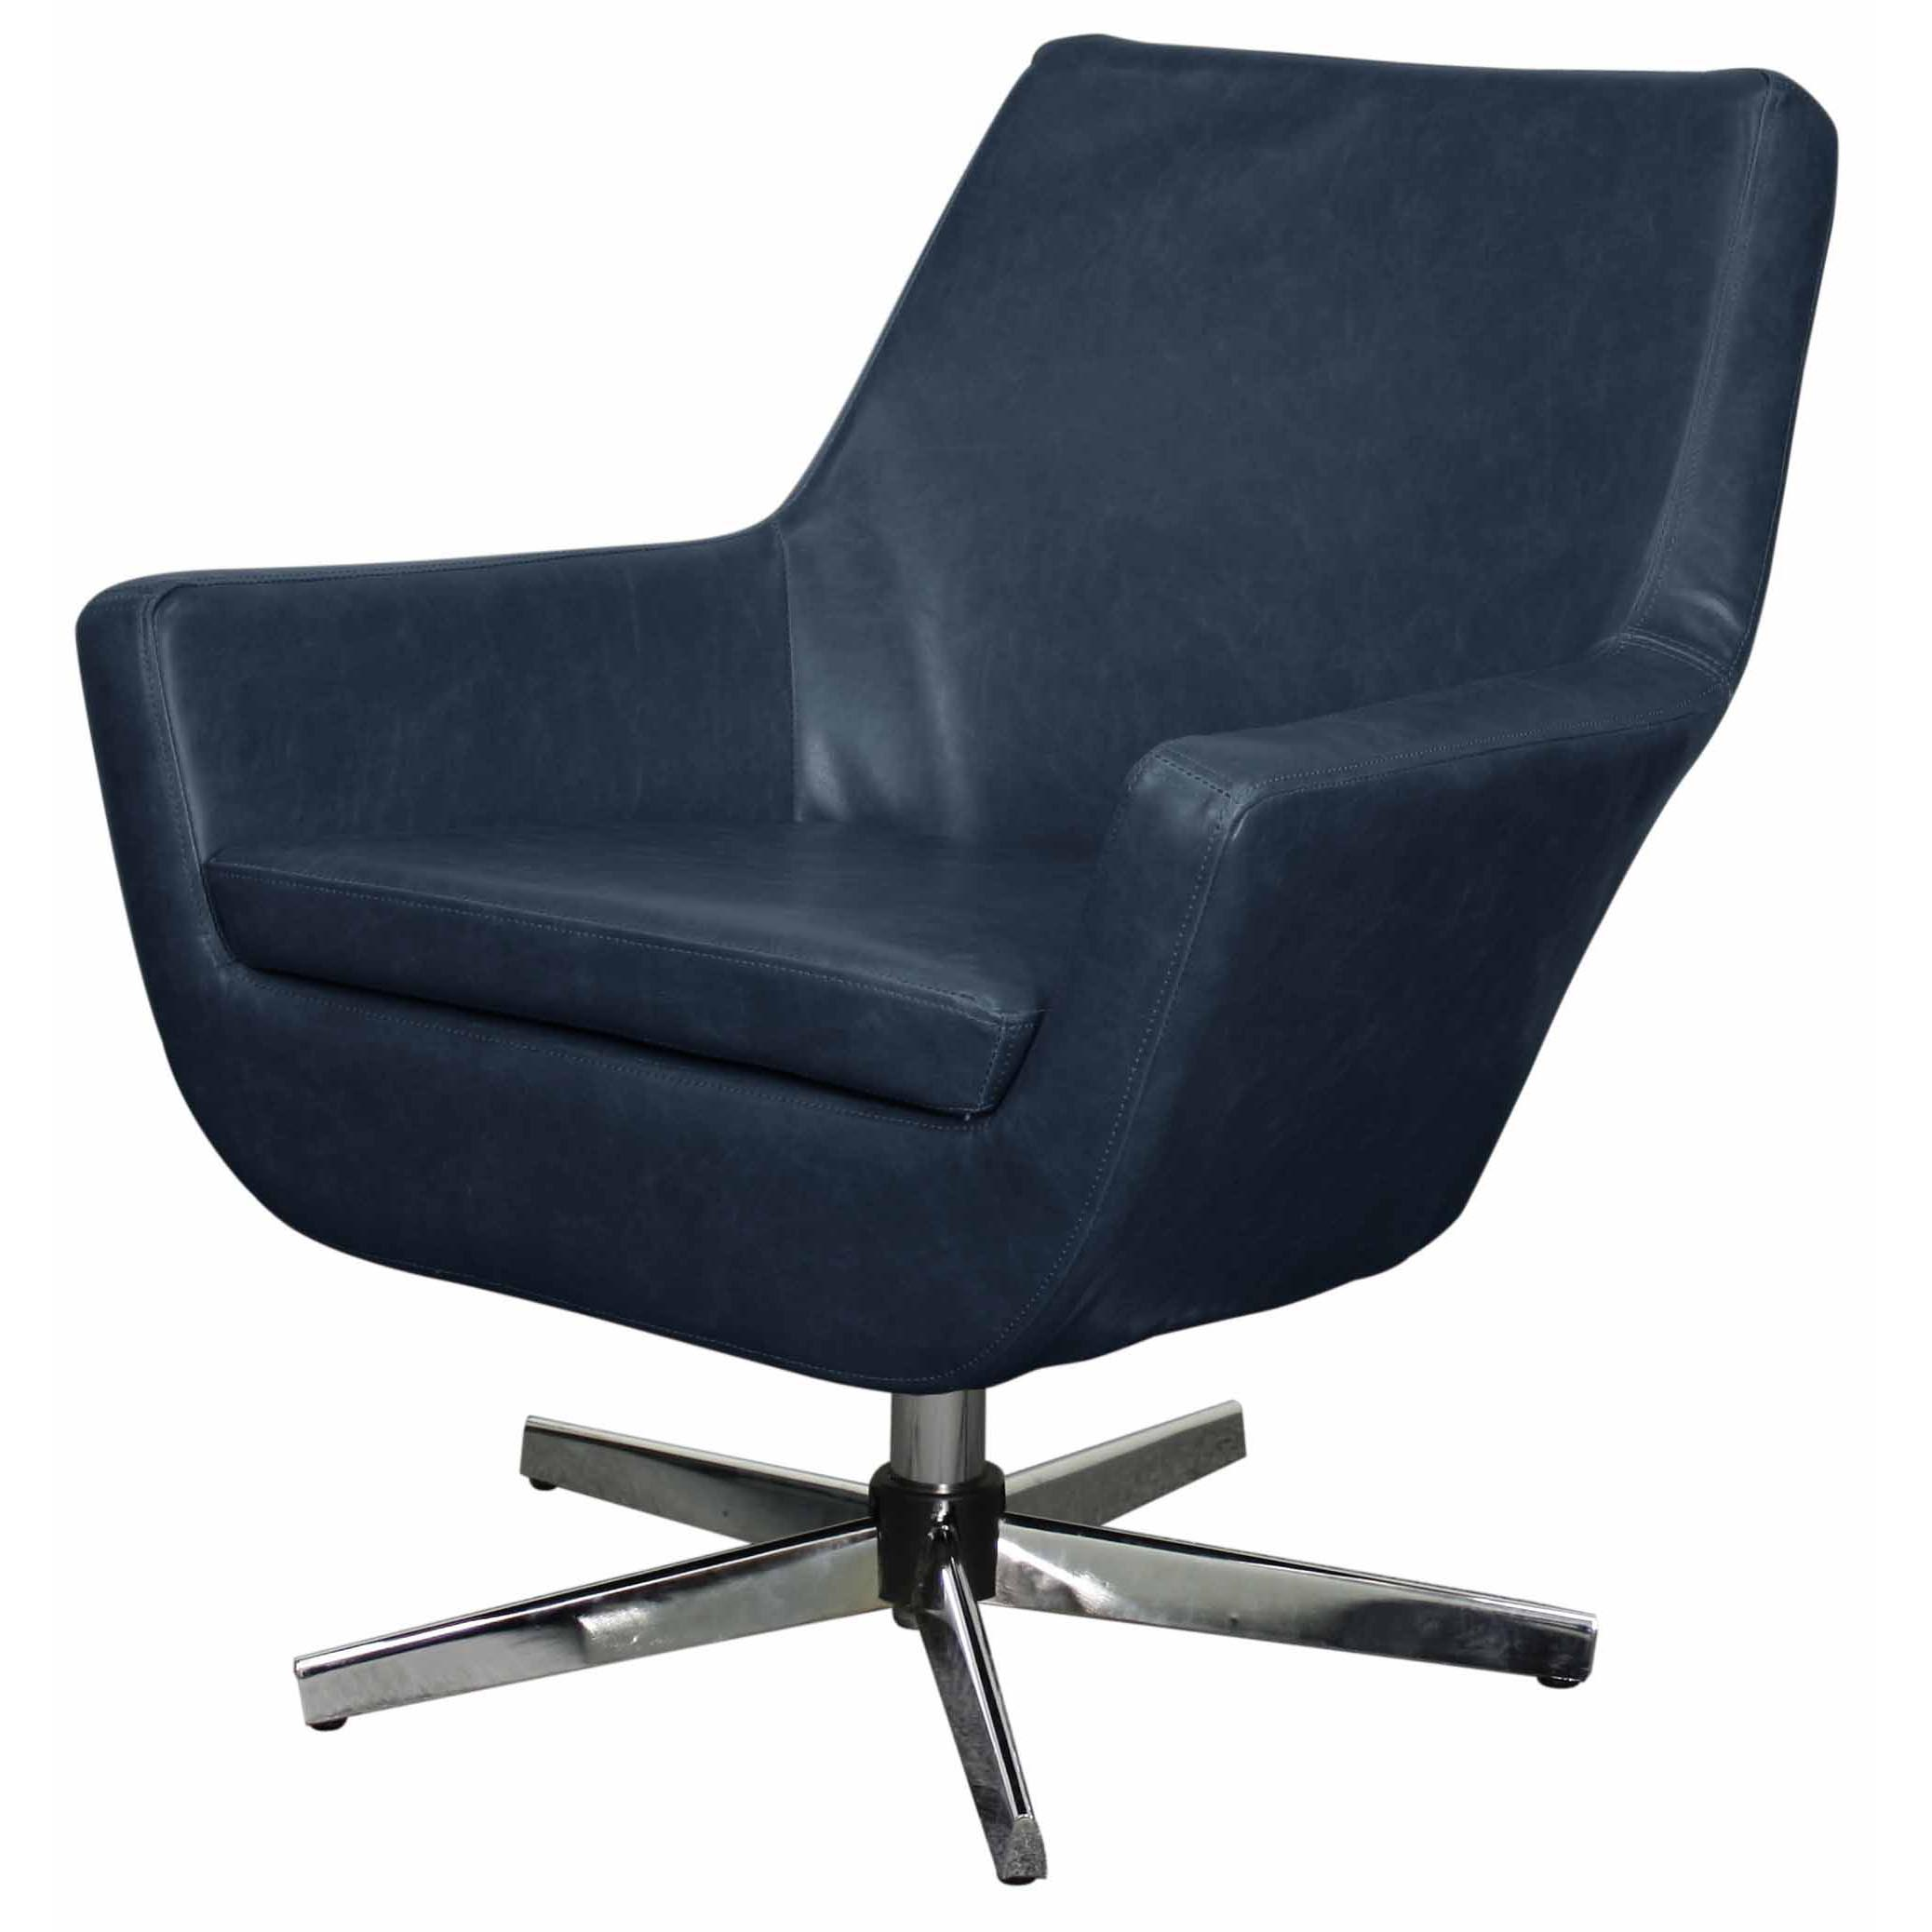 Vintage Swivel Chair Zelda Pu Swivel Chair Chrome Steel Legs Vintage Blue